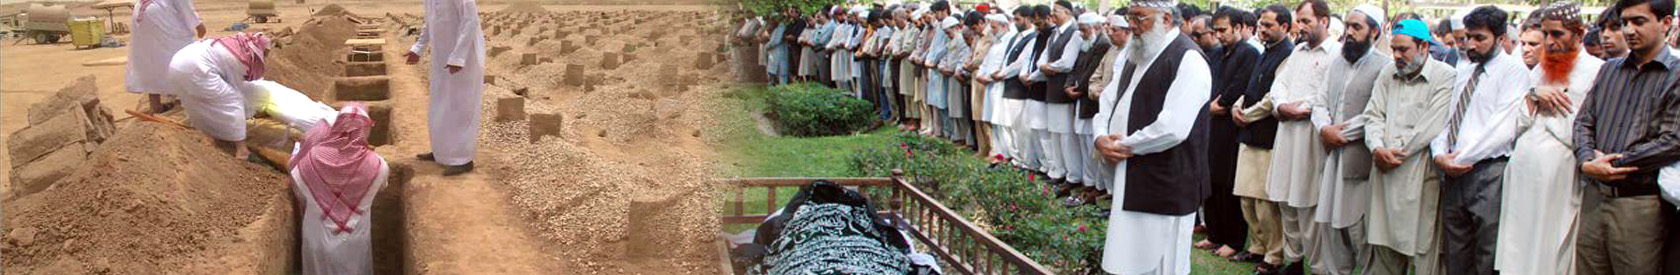 Muslim Funeral Traditions